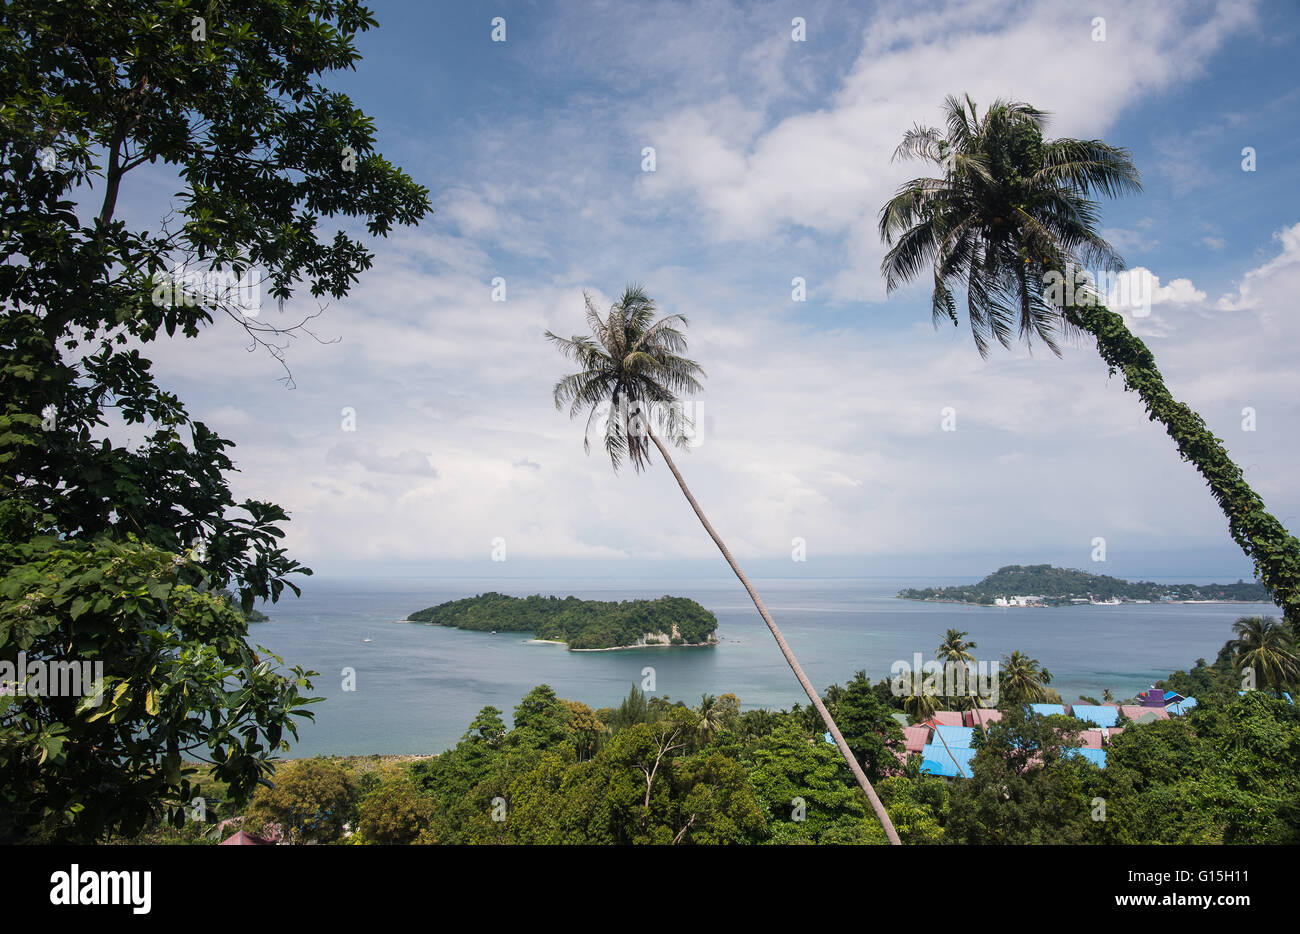 Viewpoint in Pulua Weh, Sumatra, Indonesia, Southeast Asia - Stock Image